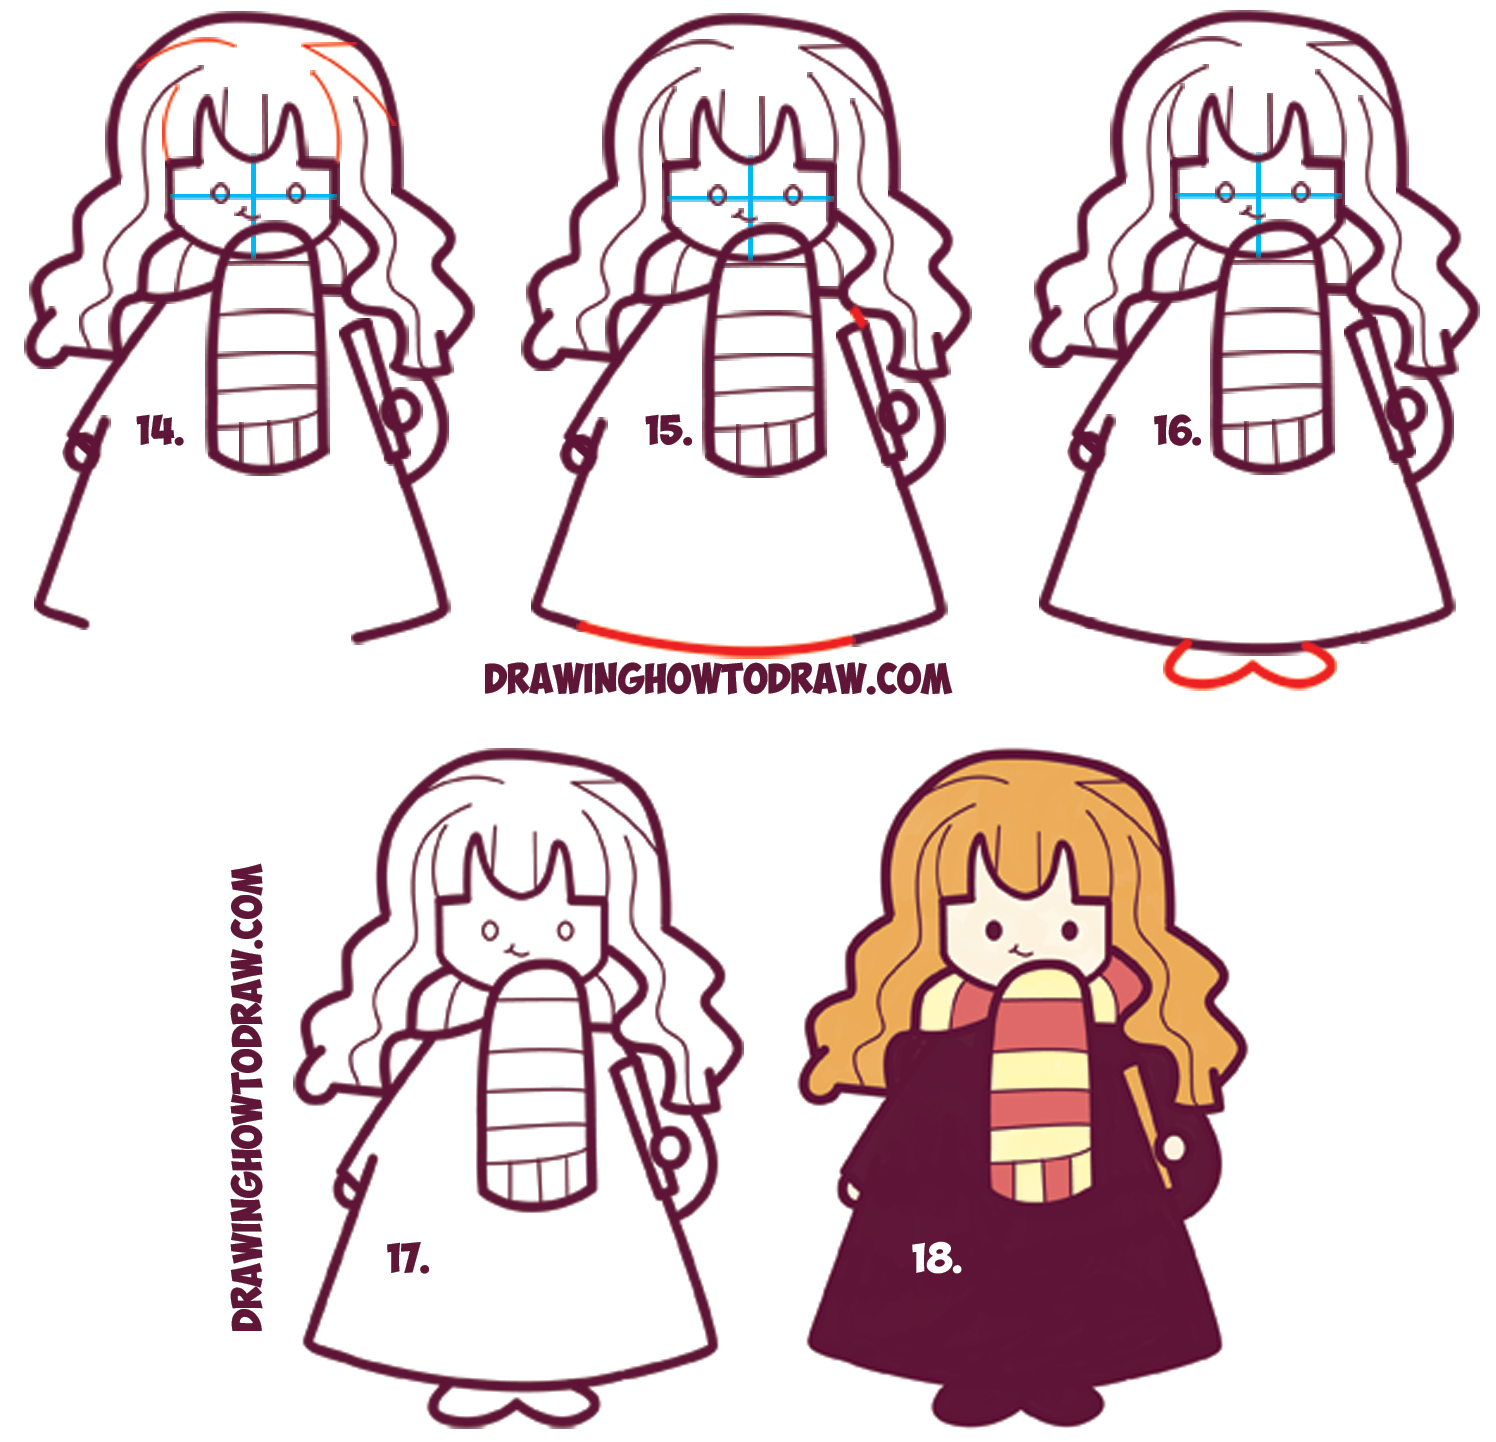 Learn How to Draw Chibi / Kawaii / Cute Hermione from Harry Potter : Simple Step by Step Art Drawing Lesson for Kids